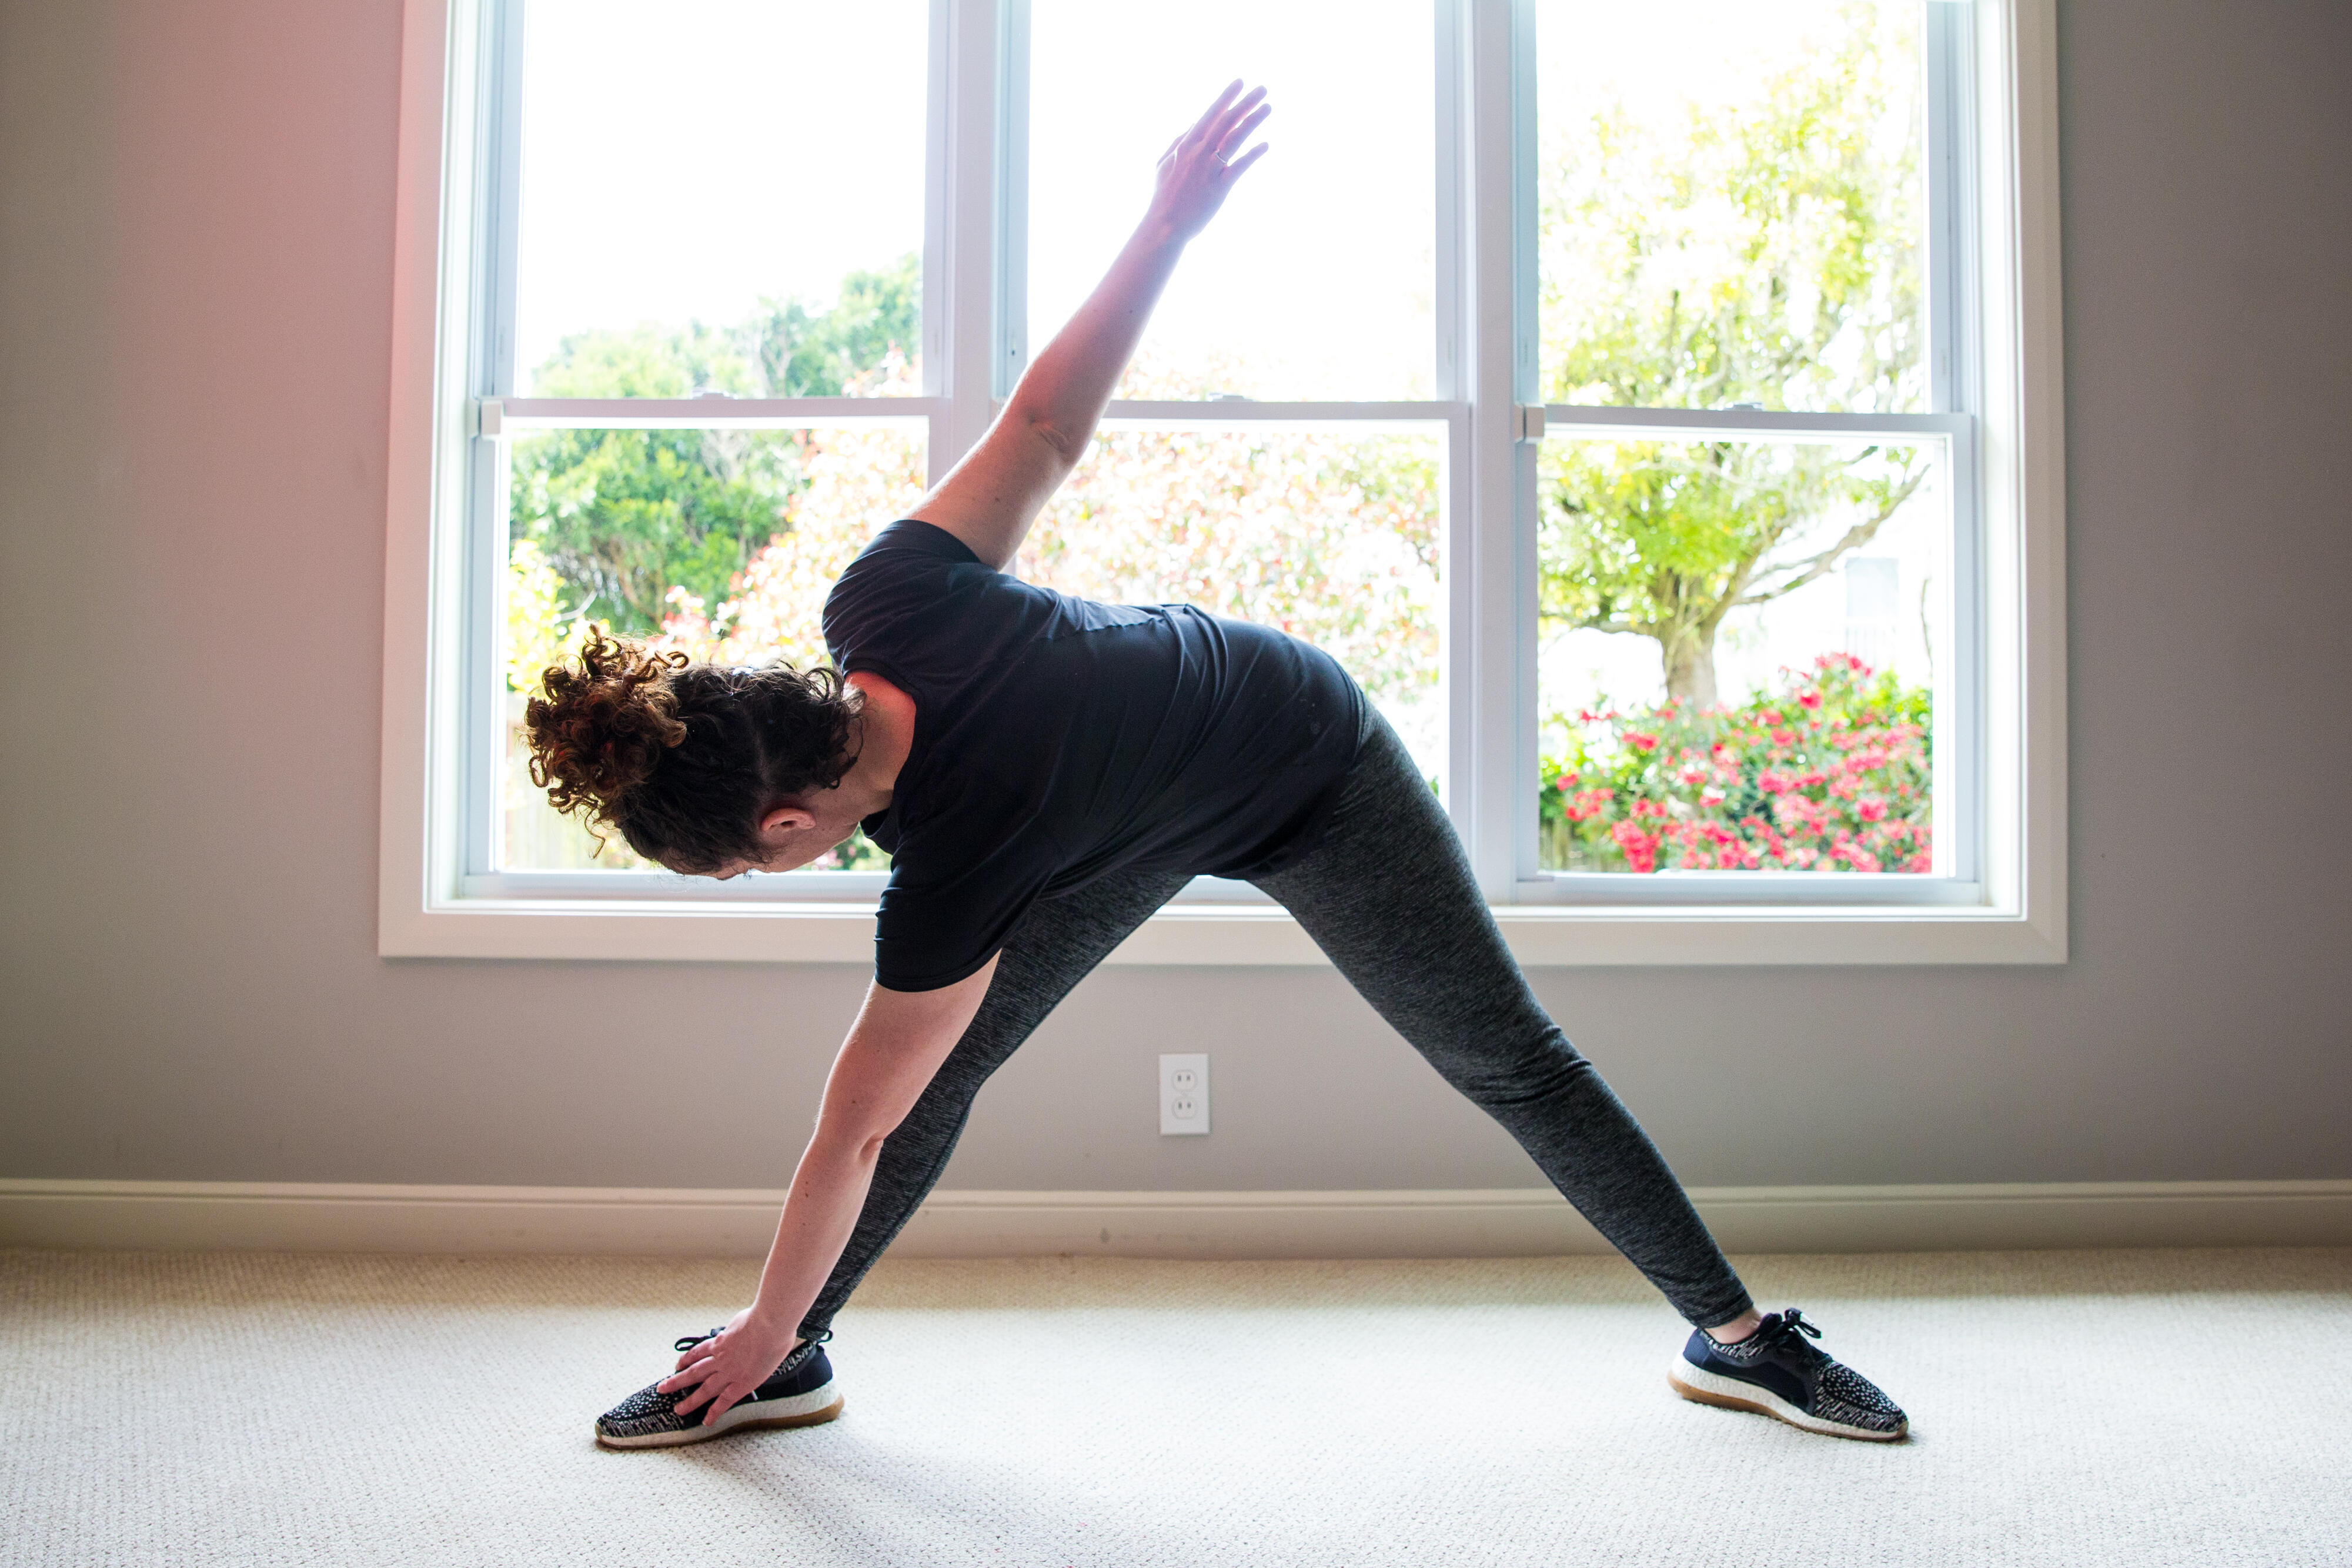 How to create an exercise routine you'll actually stick to - CNET